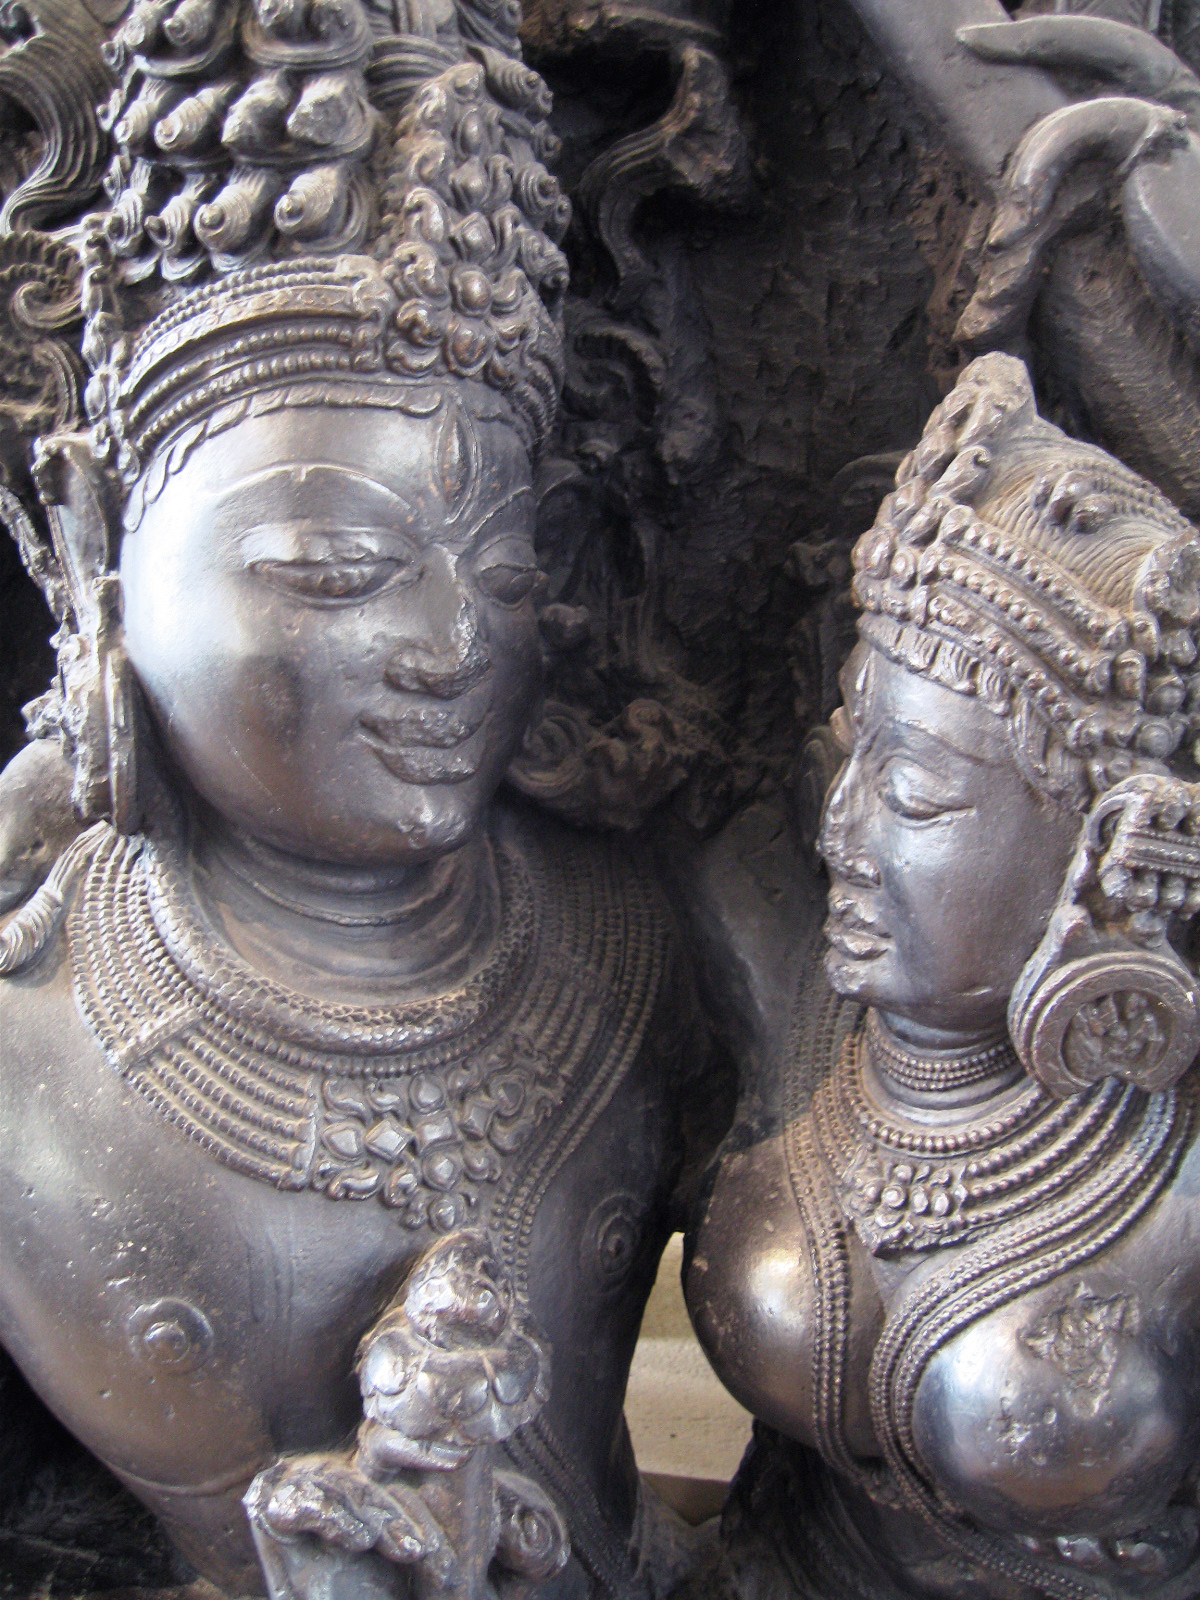 Shiva and his consort Parvati in their role of transforming earthly love into its consummation in a higher world